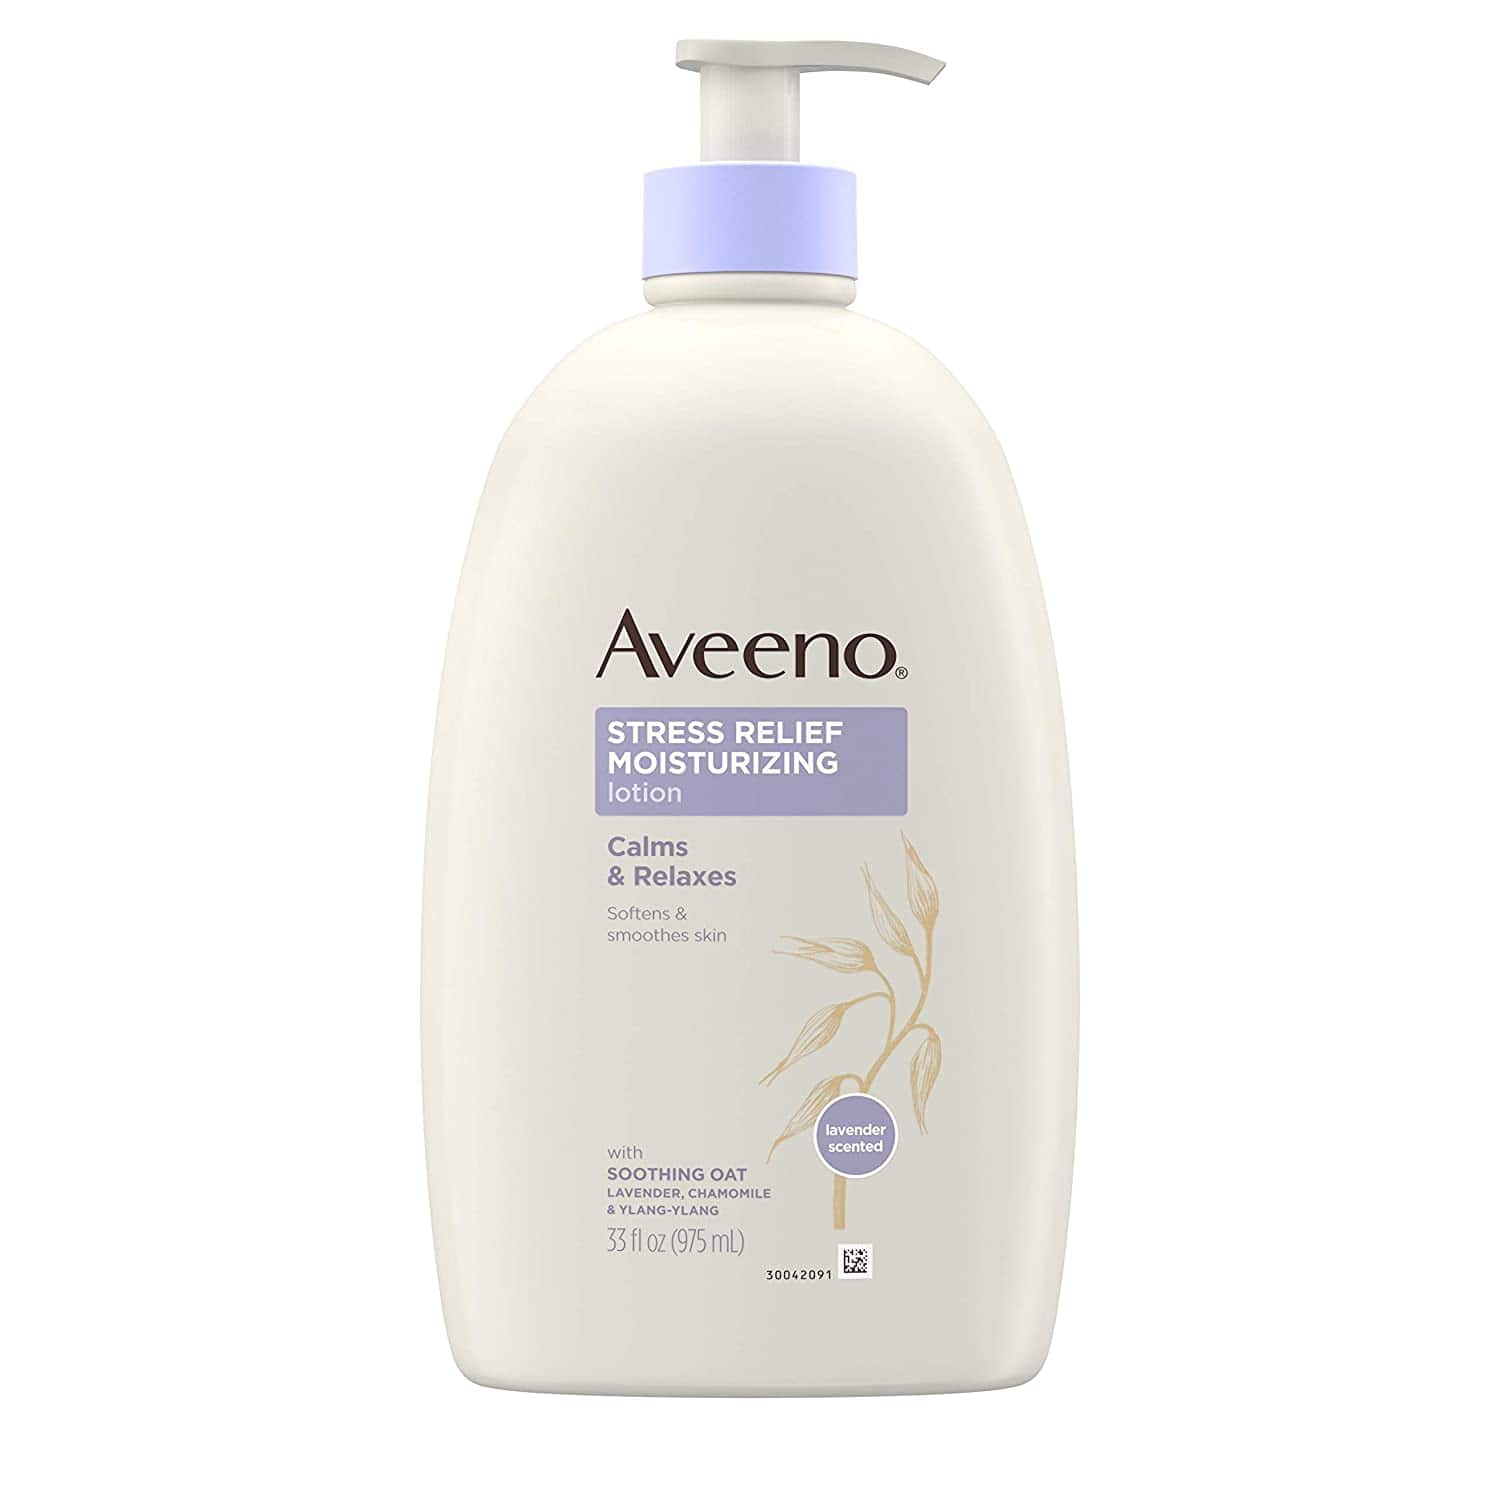 33-Oz Aveeno Stress Relief Moisturizing Body Lotion with Lavender, Natural Oatmeal and Chamomile & Ylang-Ylang Essential Oils to Calm & Relax $9.47